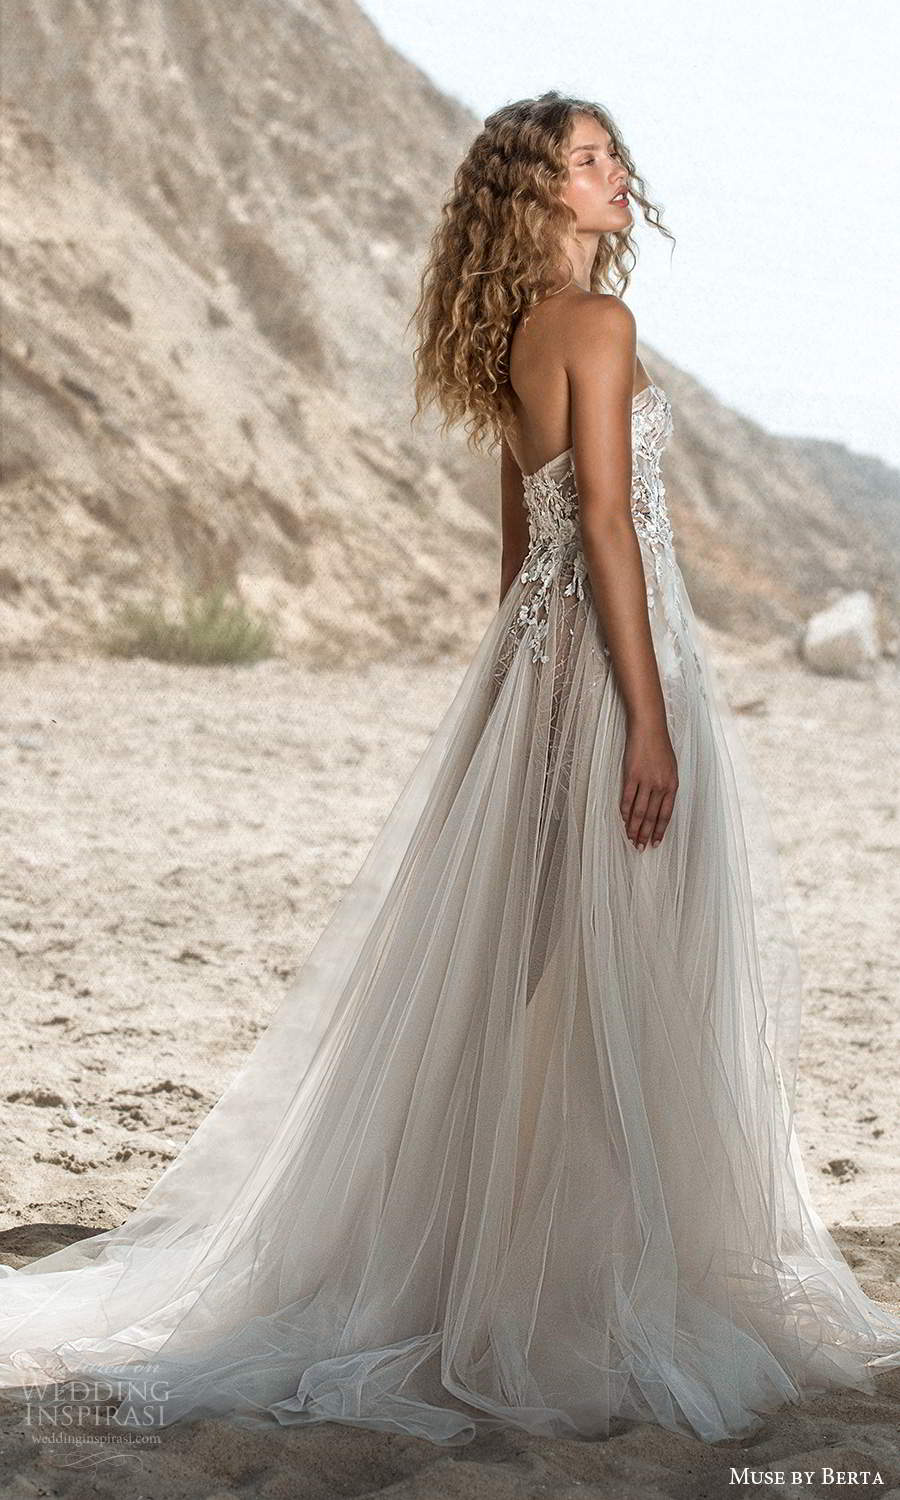 muse by berta fall 2021 bridal strapless sweetheart neckline heavily embellished bodice a line ball gown wedding dress chapel train (4) sv